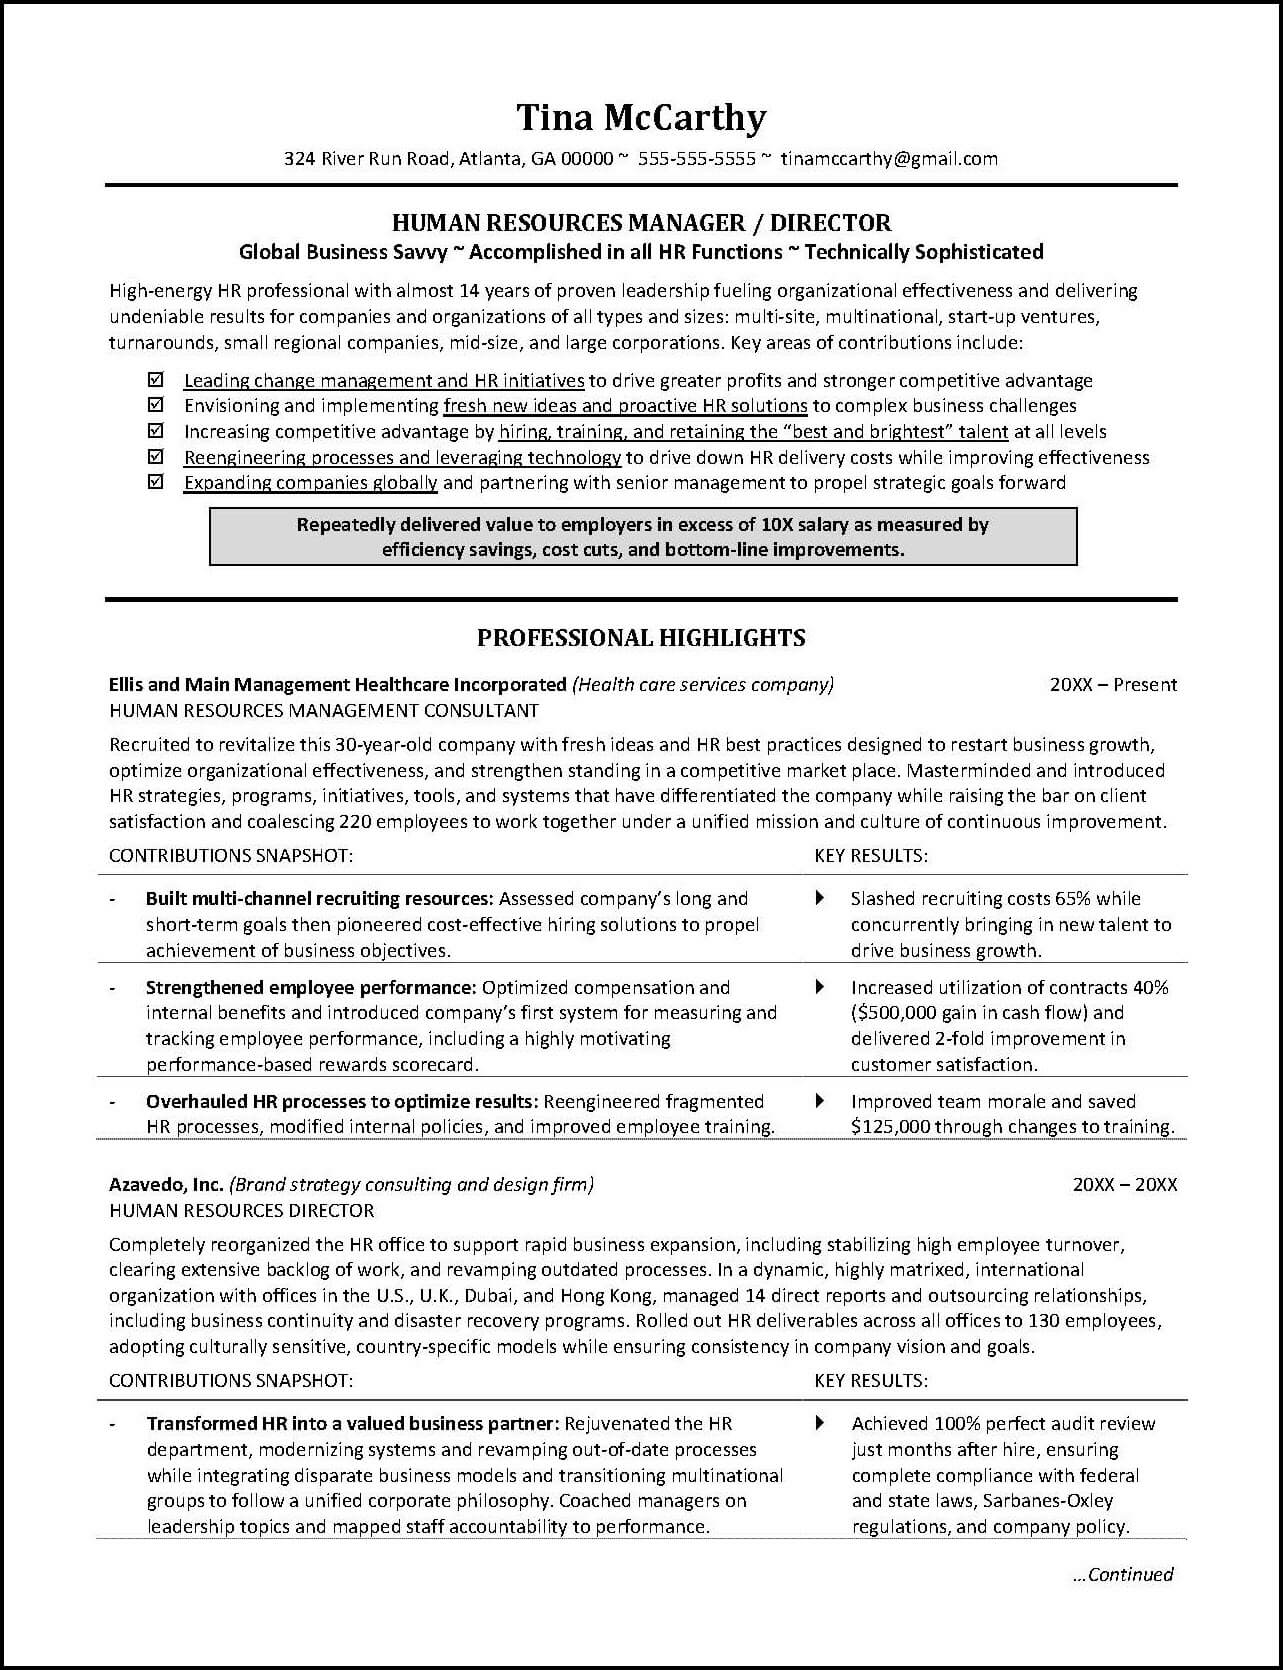 human resources resume example distinctive career services manager template money Resume Human Resources Manager Resume Template